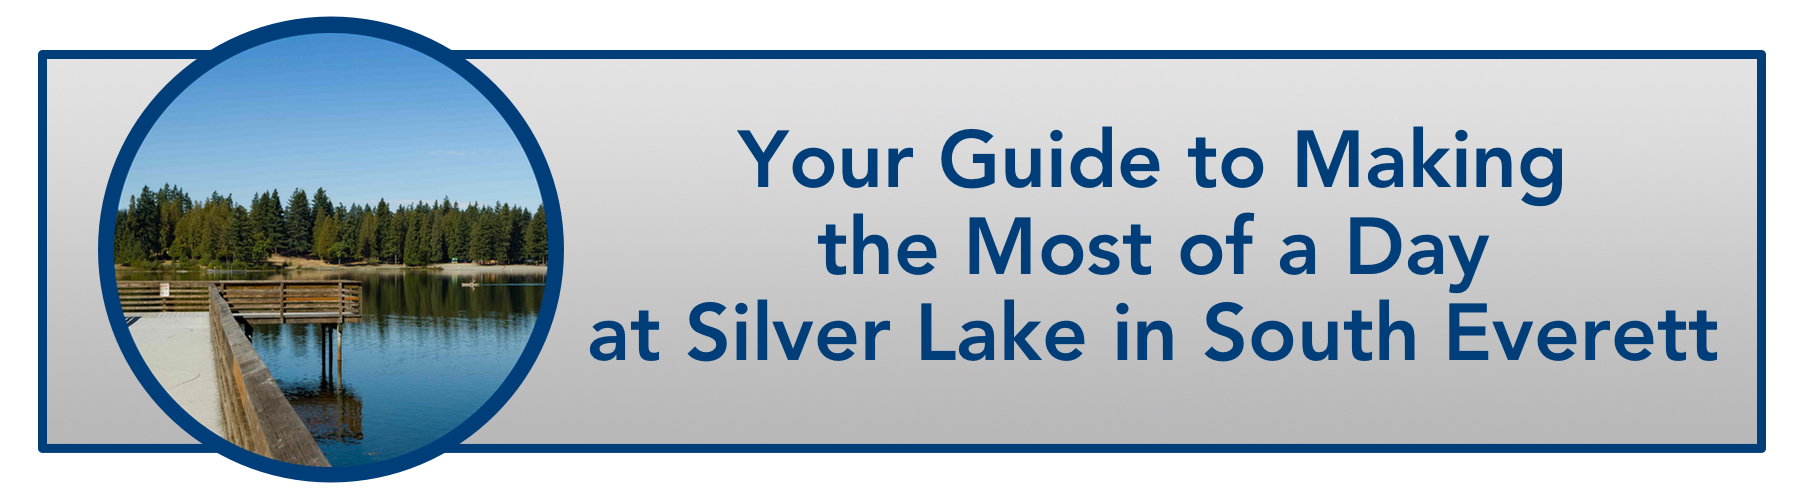 WindermereNorth_SouthEverett_Your Guide to Making the Most of a Day at Silver Lake in South Everett